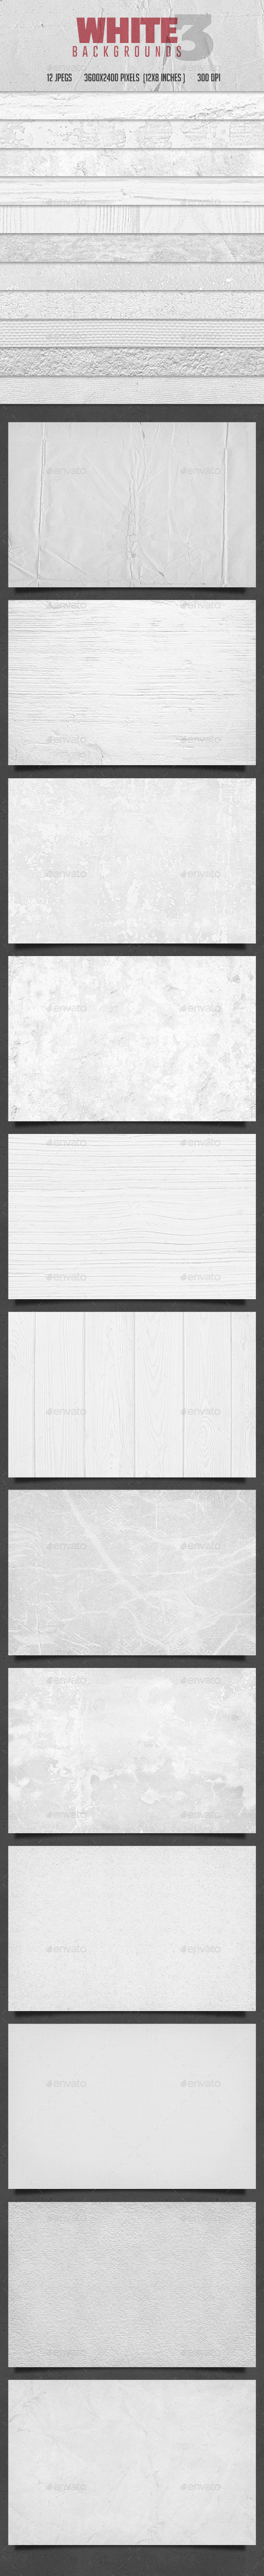 White Backgrounds Col 3 - Backgrounds Graphics